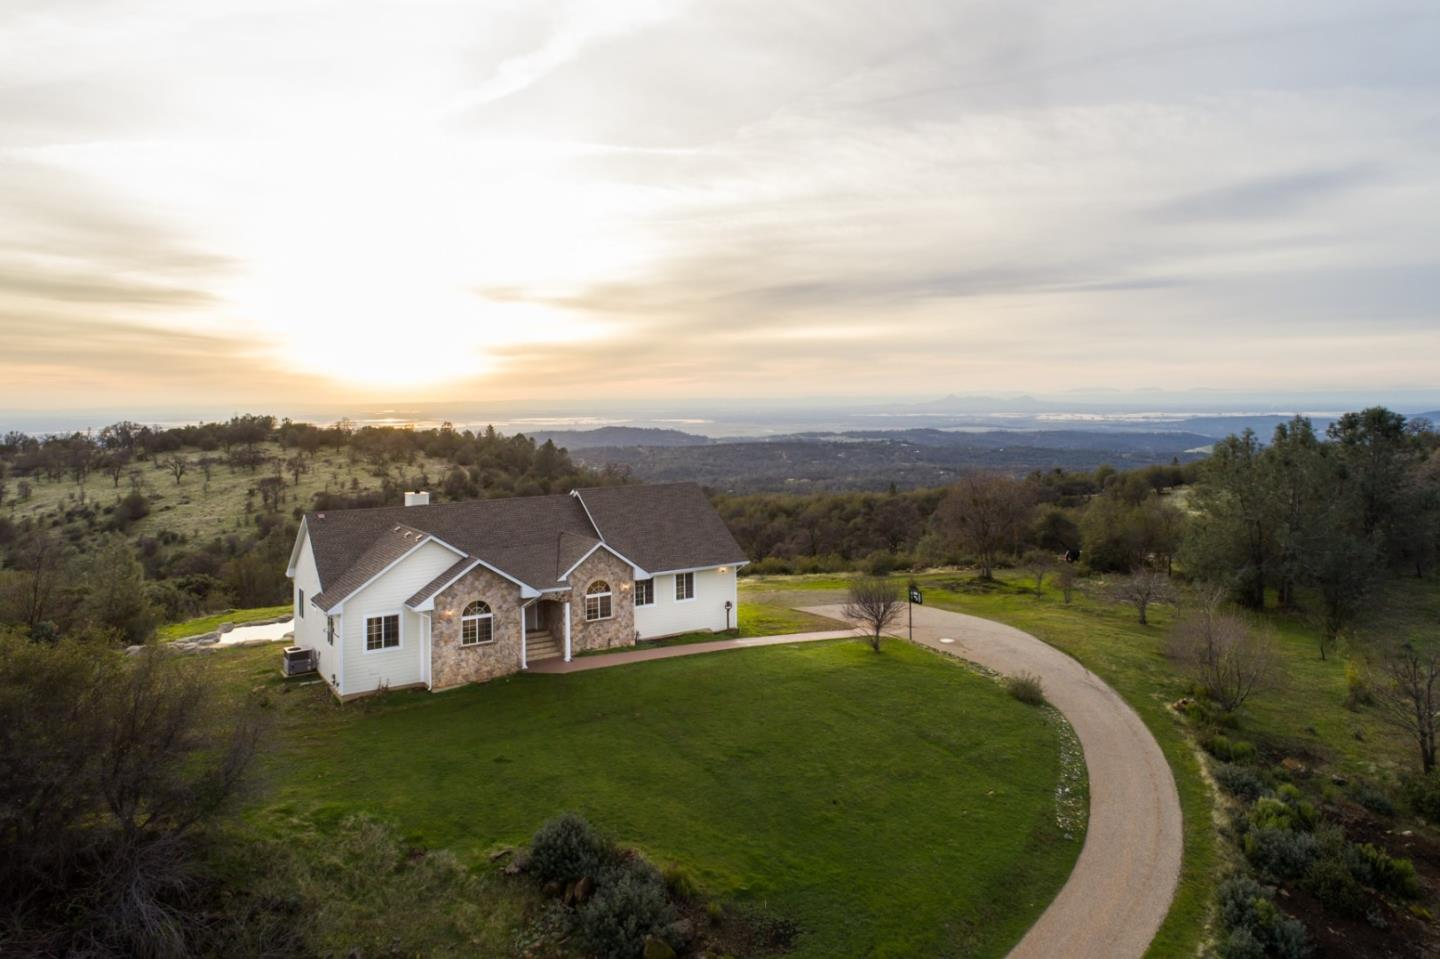 Single Family Home for Sale at 10850 Bell Road 10850 Bell Road Penn Valley, California 95946 United States